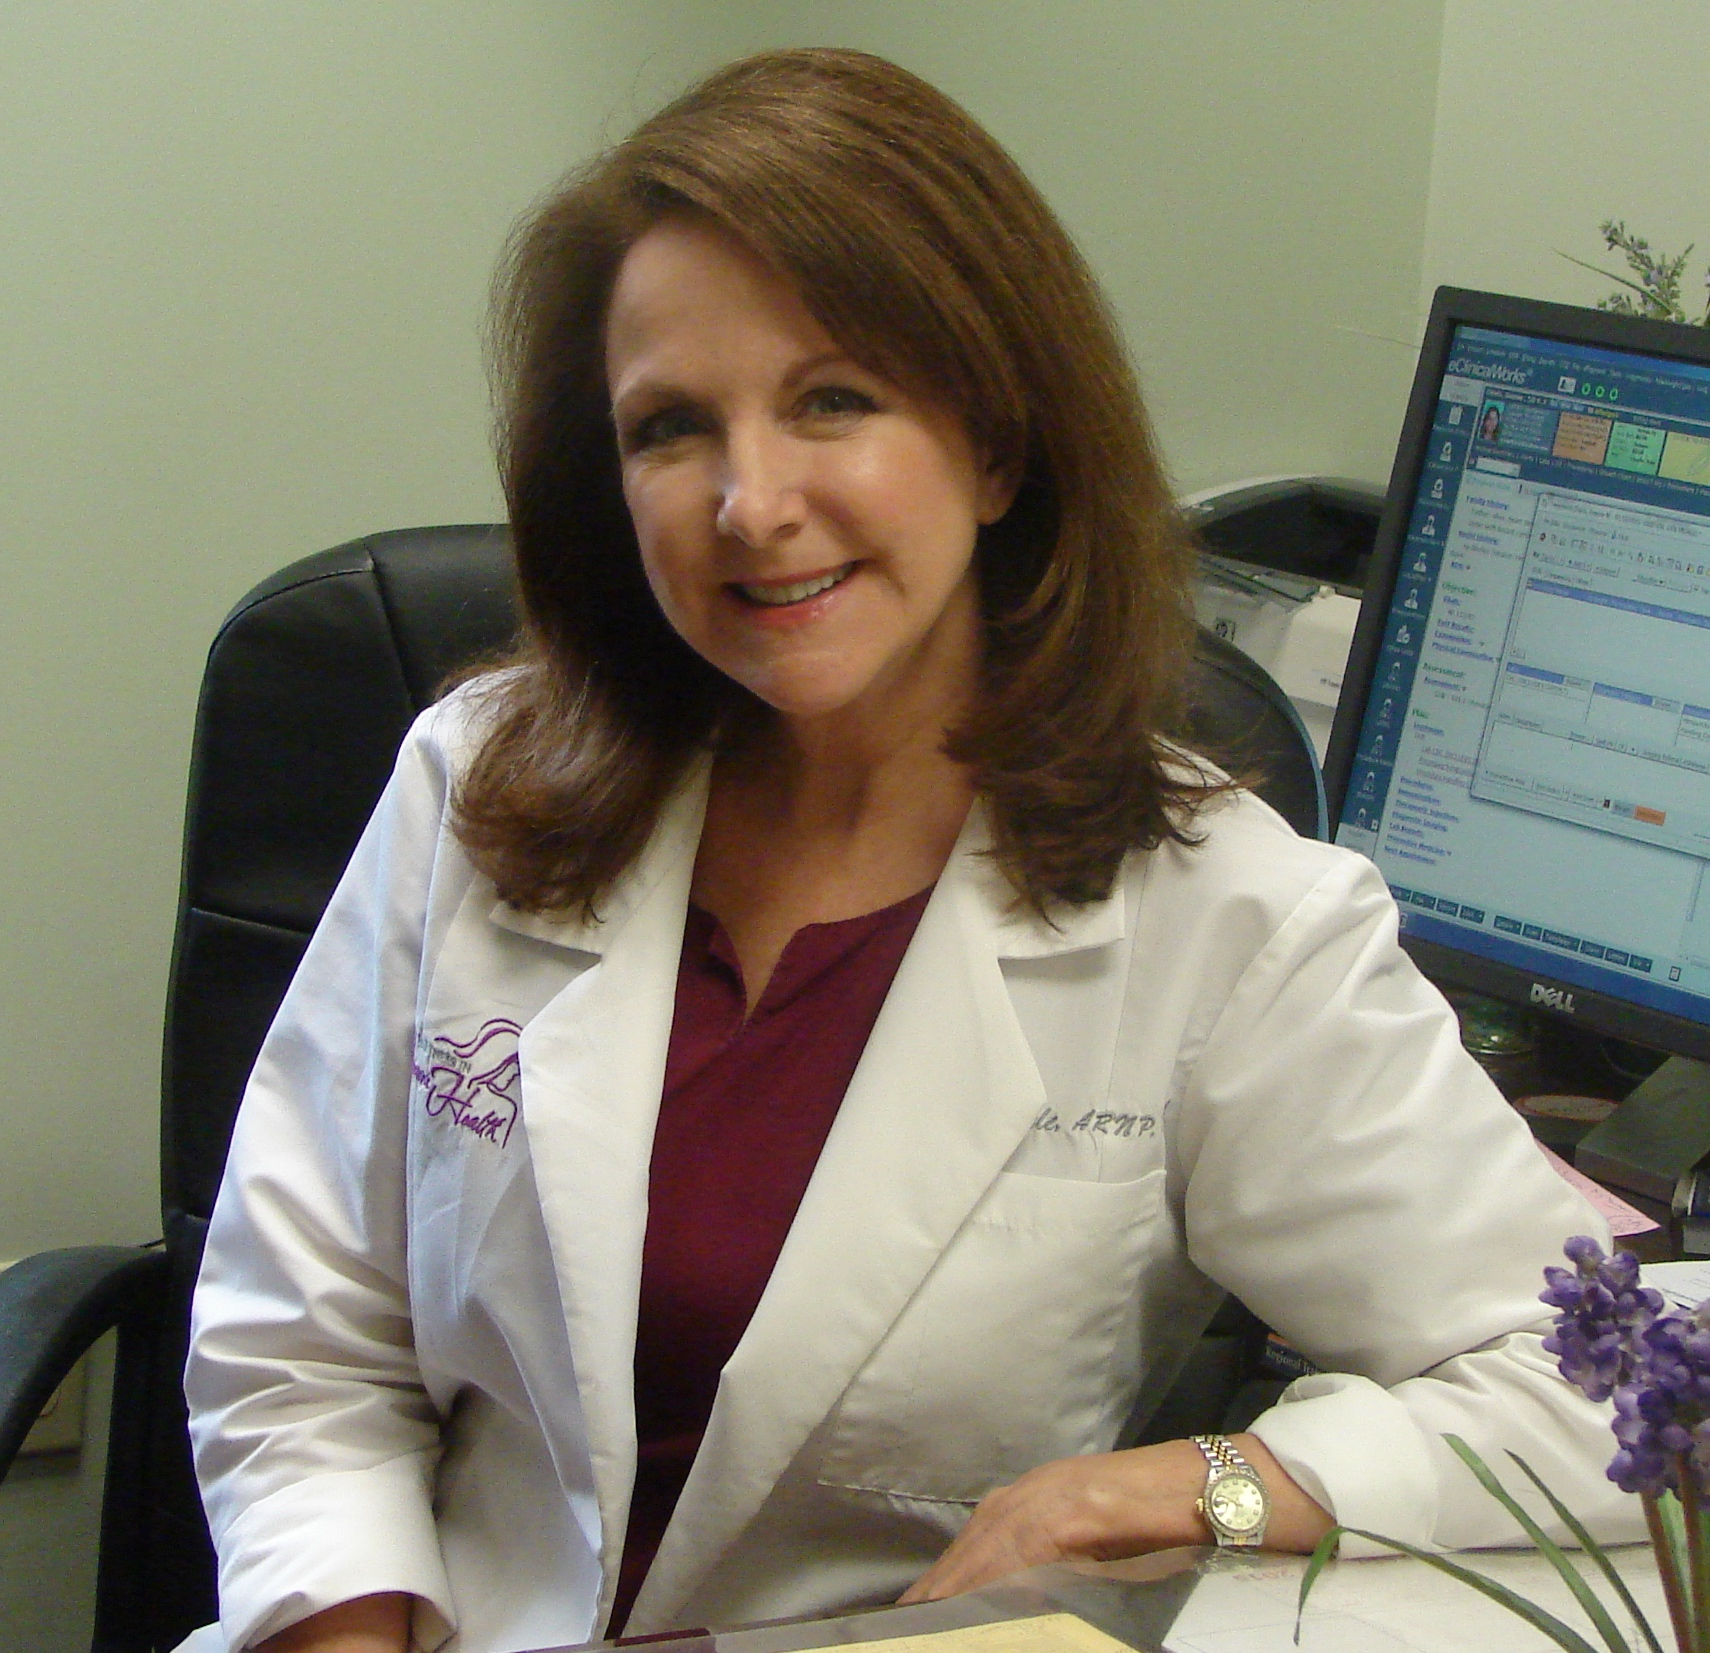 Partners In Women's Health's Ann Patrice Casale Earns Doctor of Nursing Practice (DNP) Degree